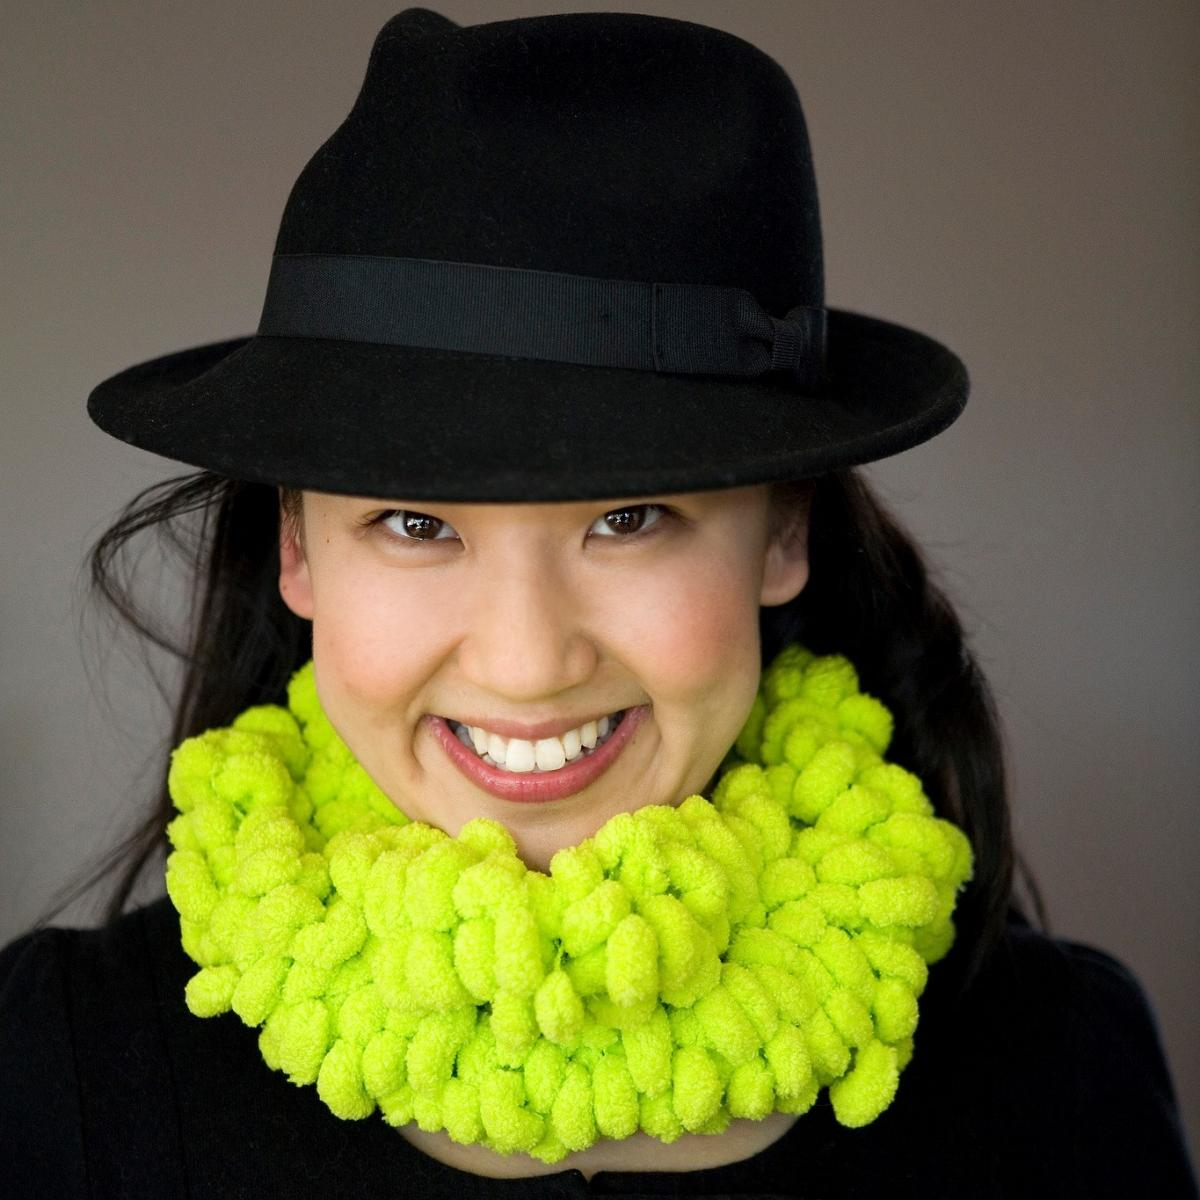 An Asian woman wearing a black fedora hat, facing forward and smiling. She is also wearing a bright lime green textured scarf.